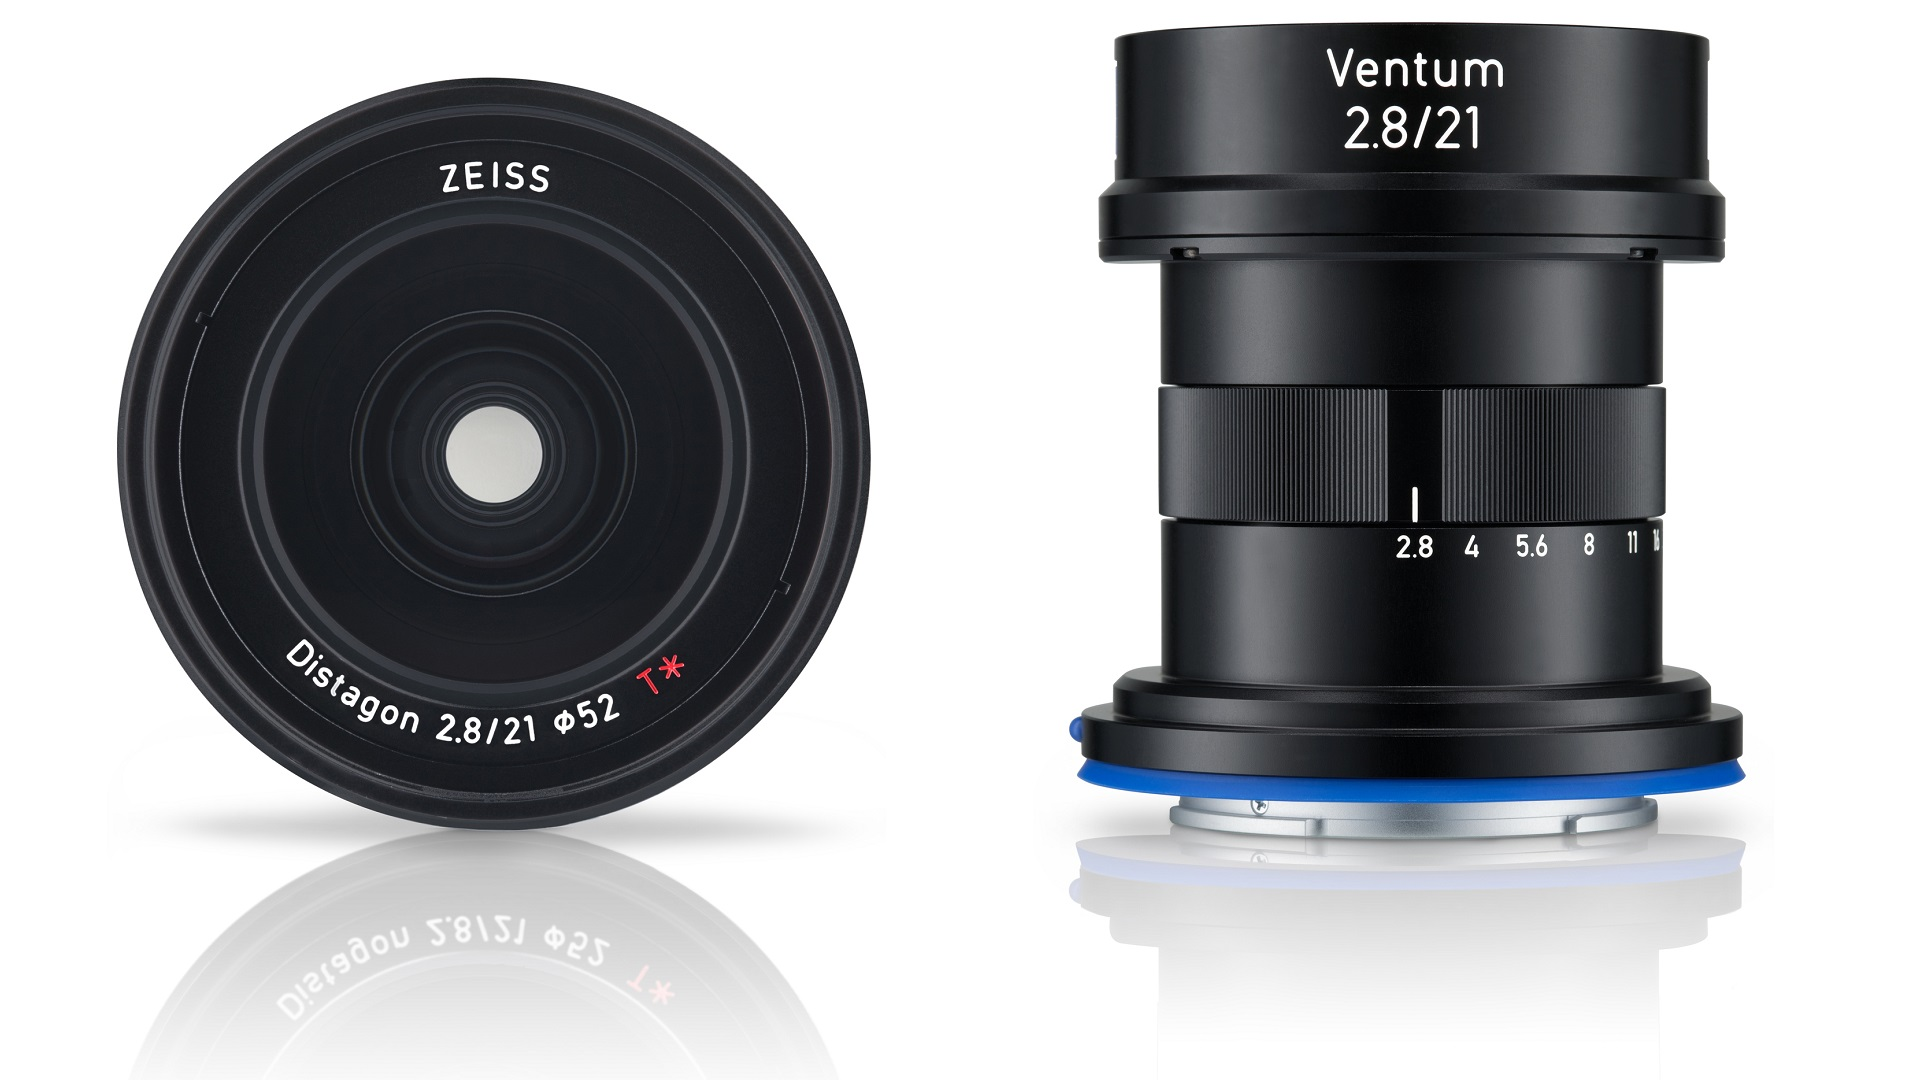 ZEISS Ventum 2.8/21 - Lightweight Industrial E-Mount Lens for Aerial Use